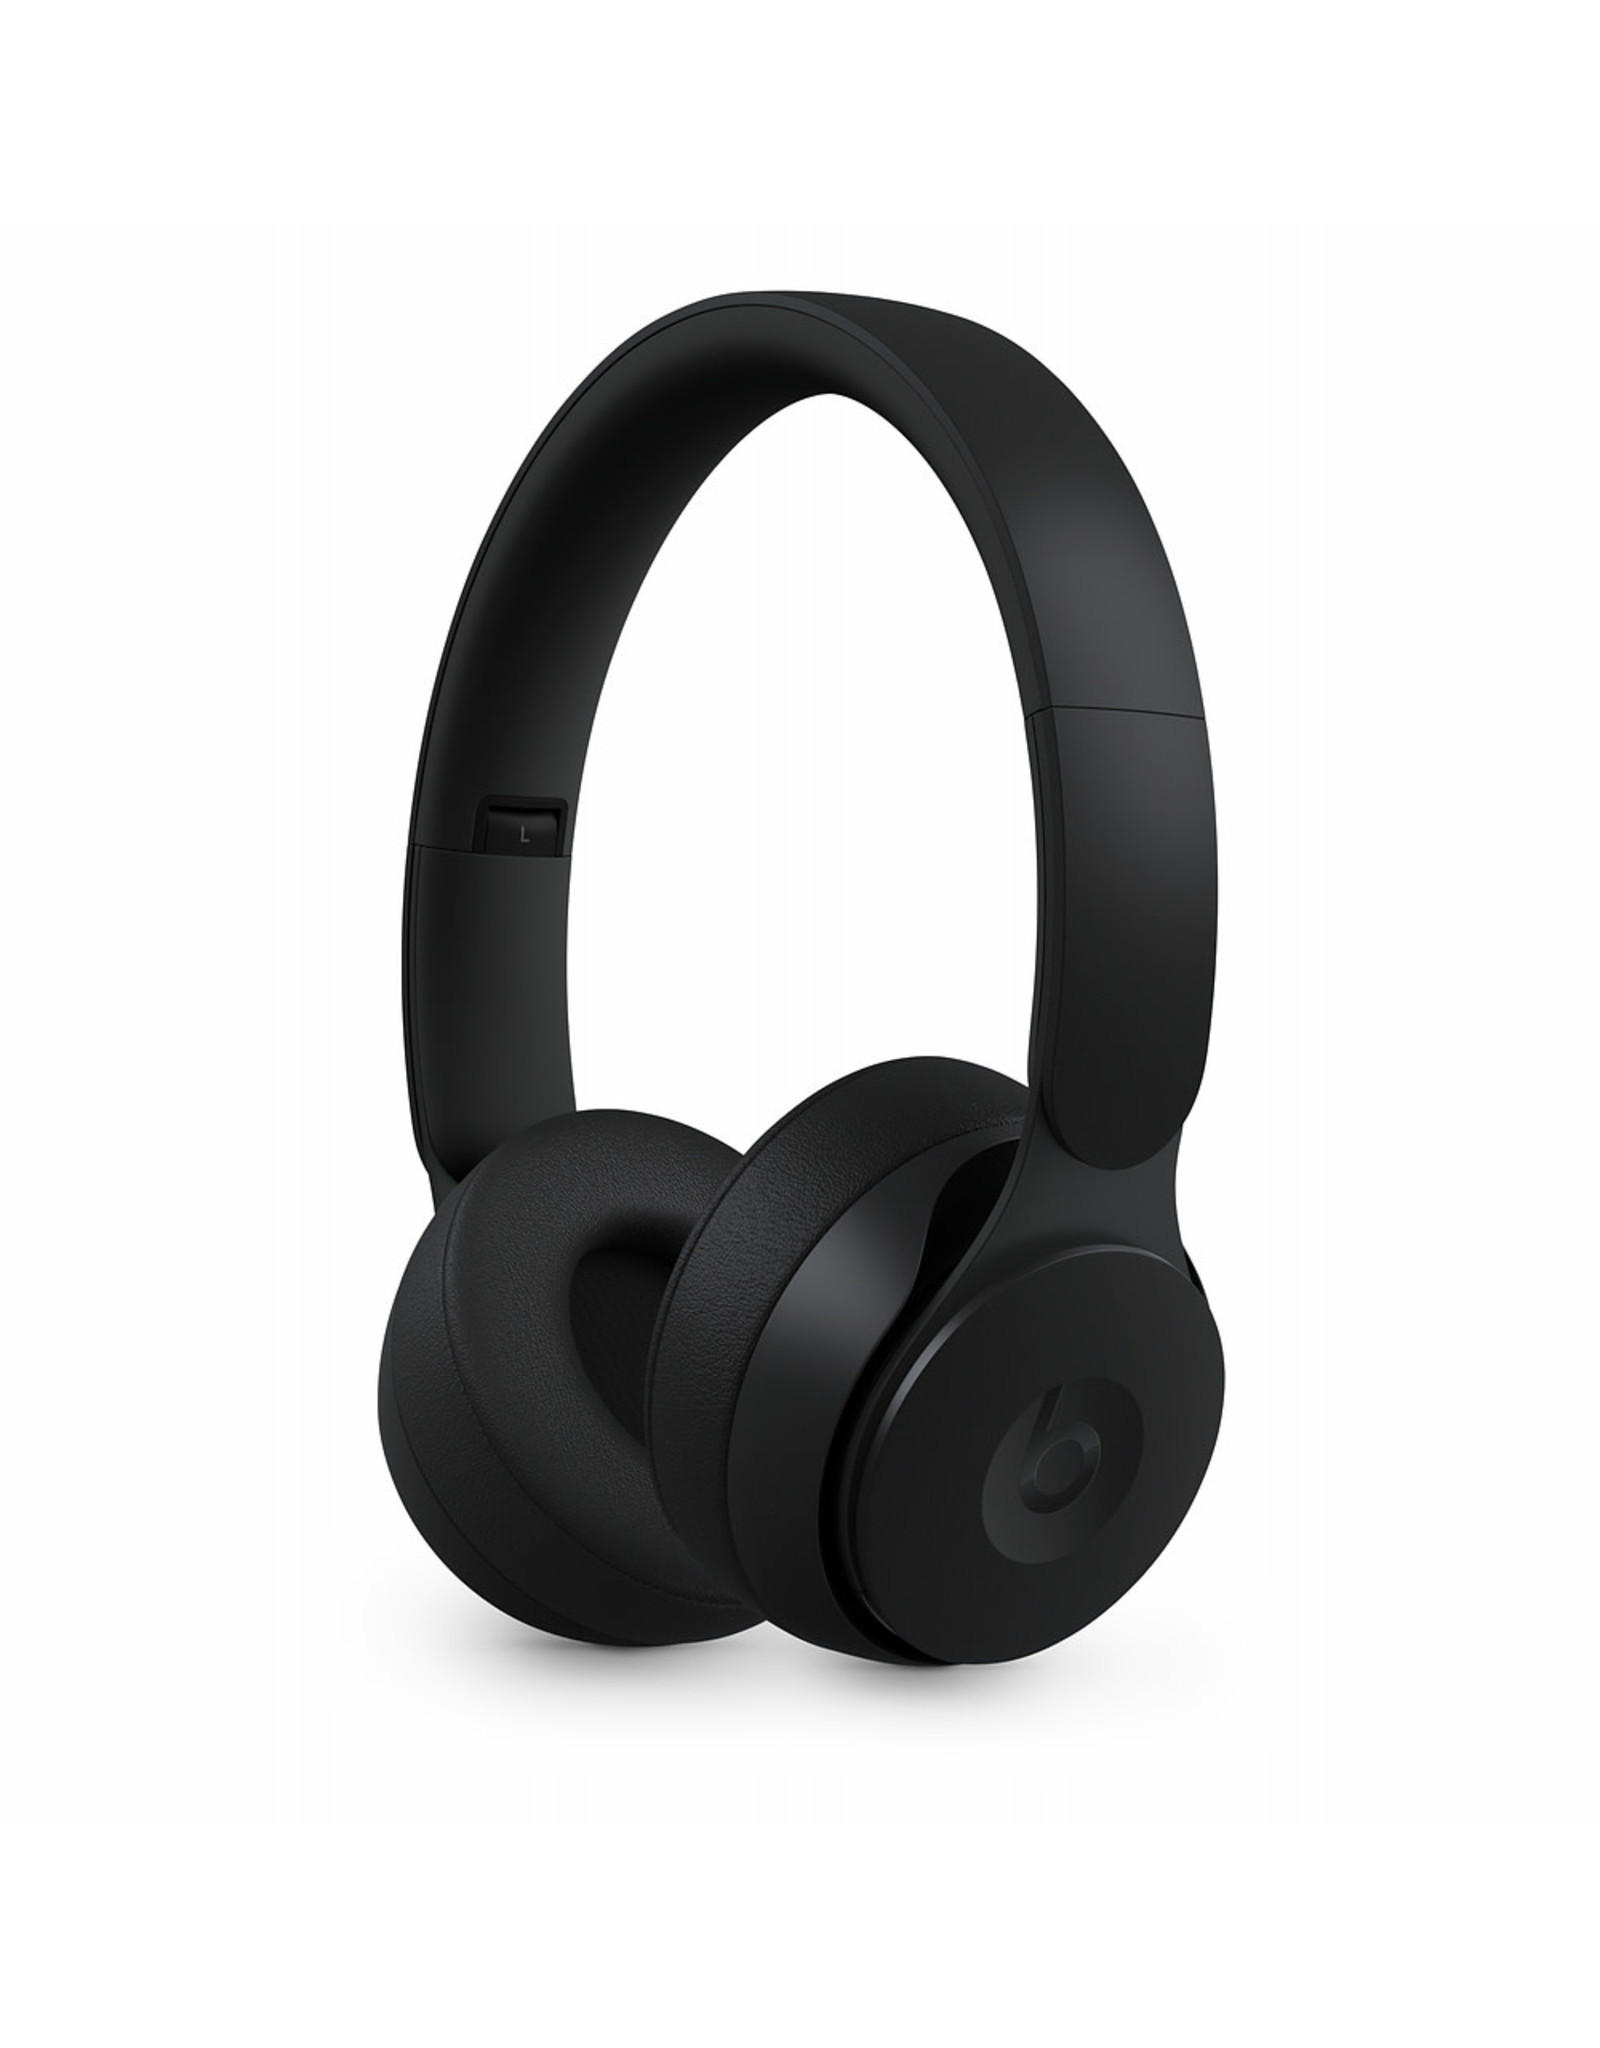 Beats Beats Solo Pro Wireless On-Ear Noise Cancelling Headphones - Black